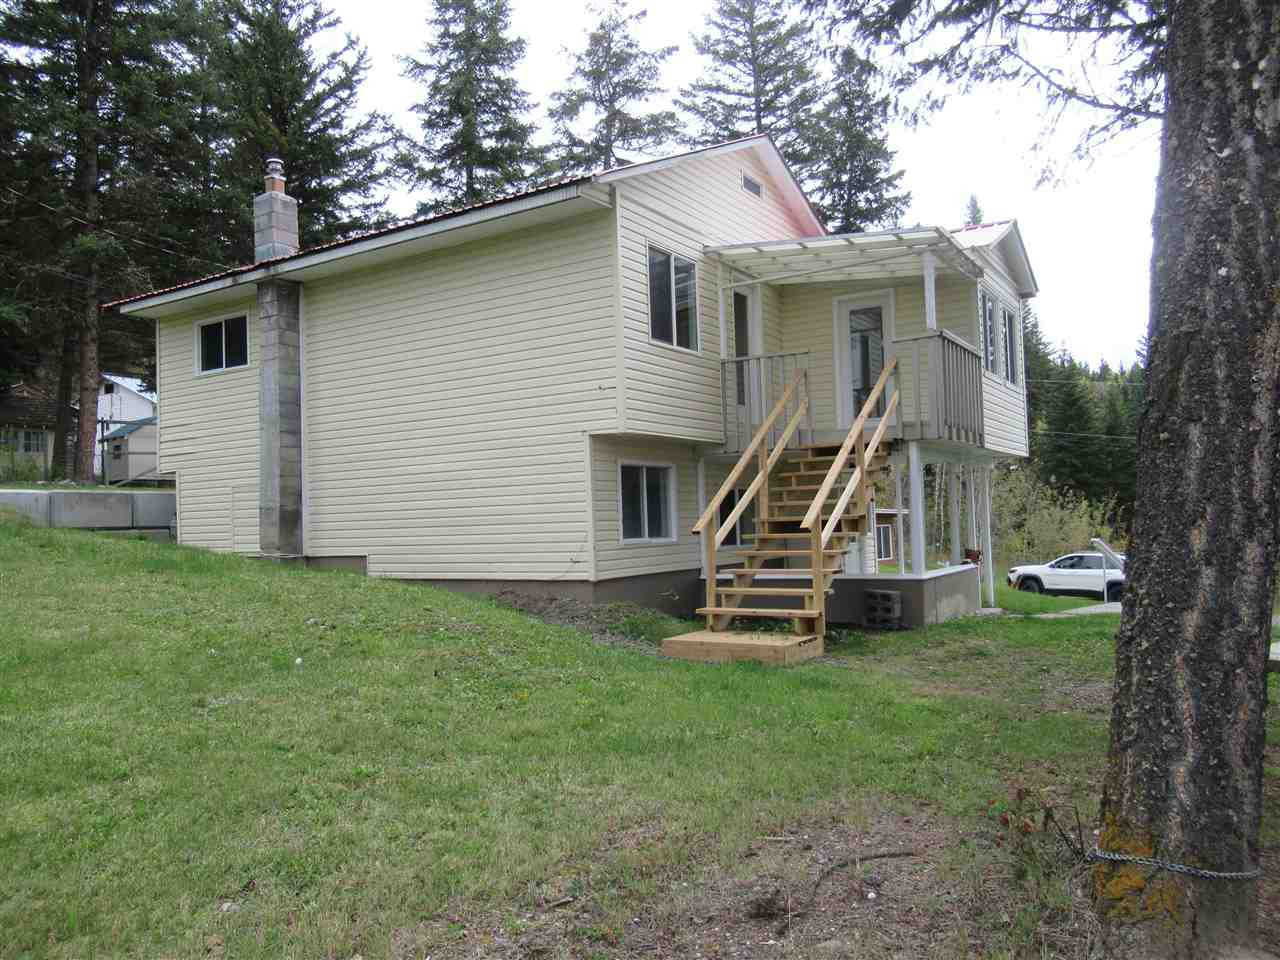 Photo 19: Photos: 3974 SCHARF Road in Williams Lake: Williams Lake - Rural North House for sale (Williams Lake (Zone 27))  : MLS®# R2409567